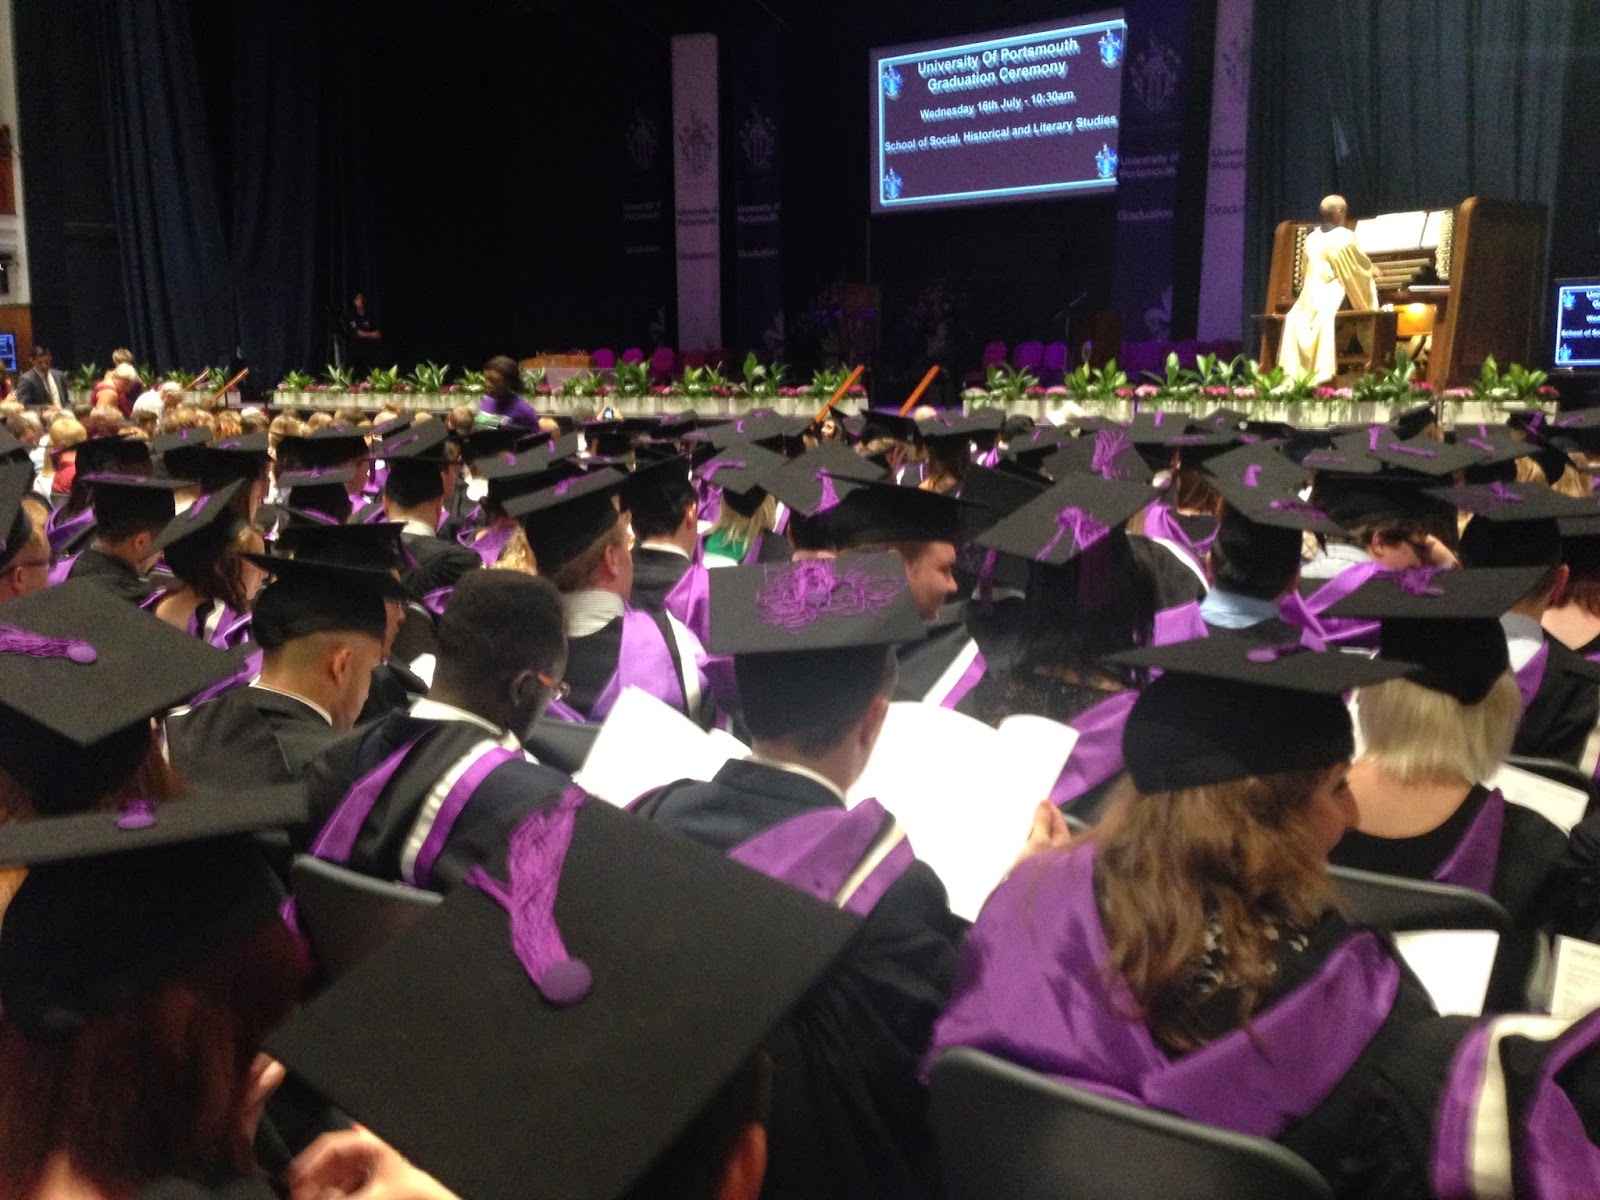 graduation graduate university of portsmouth journalism